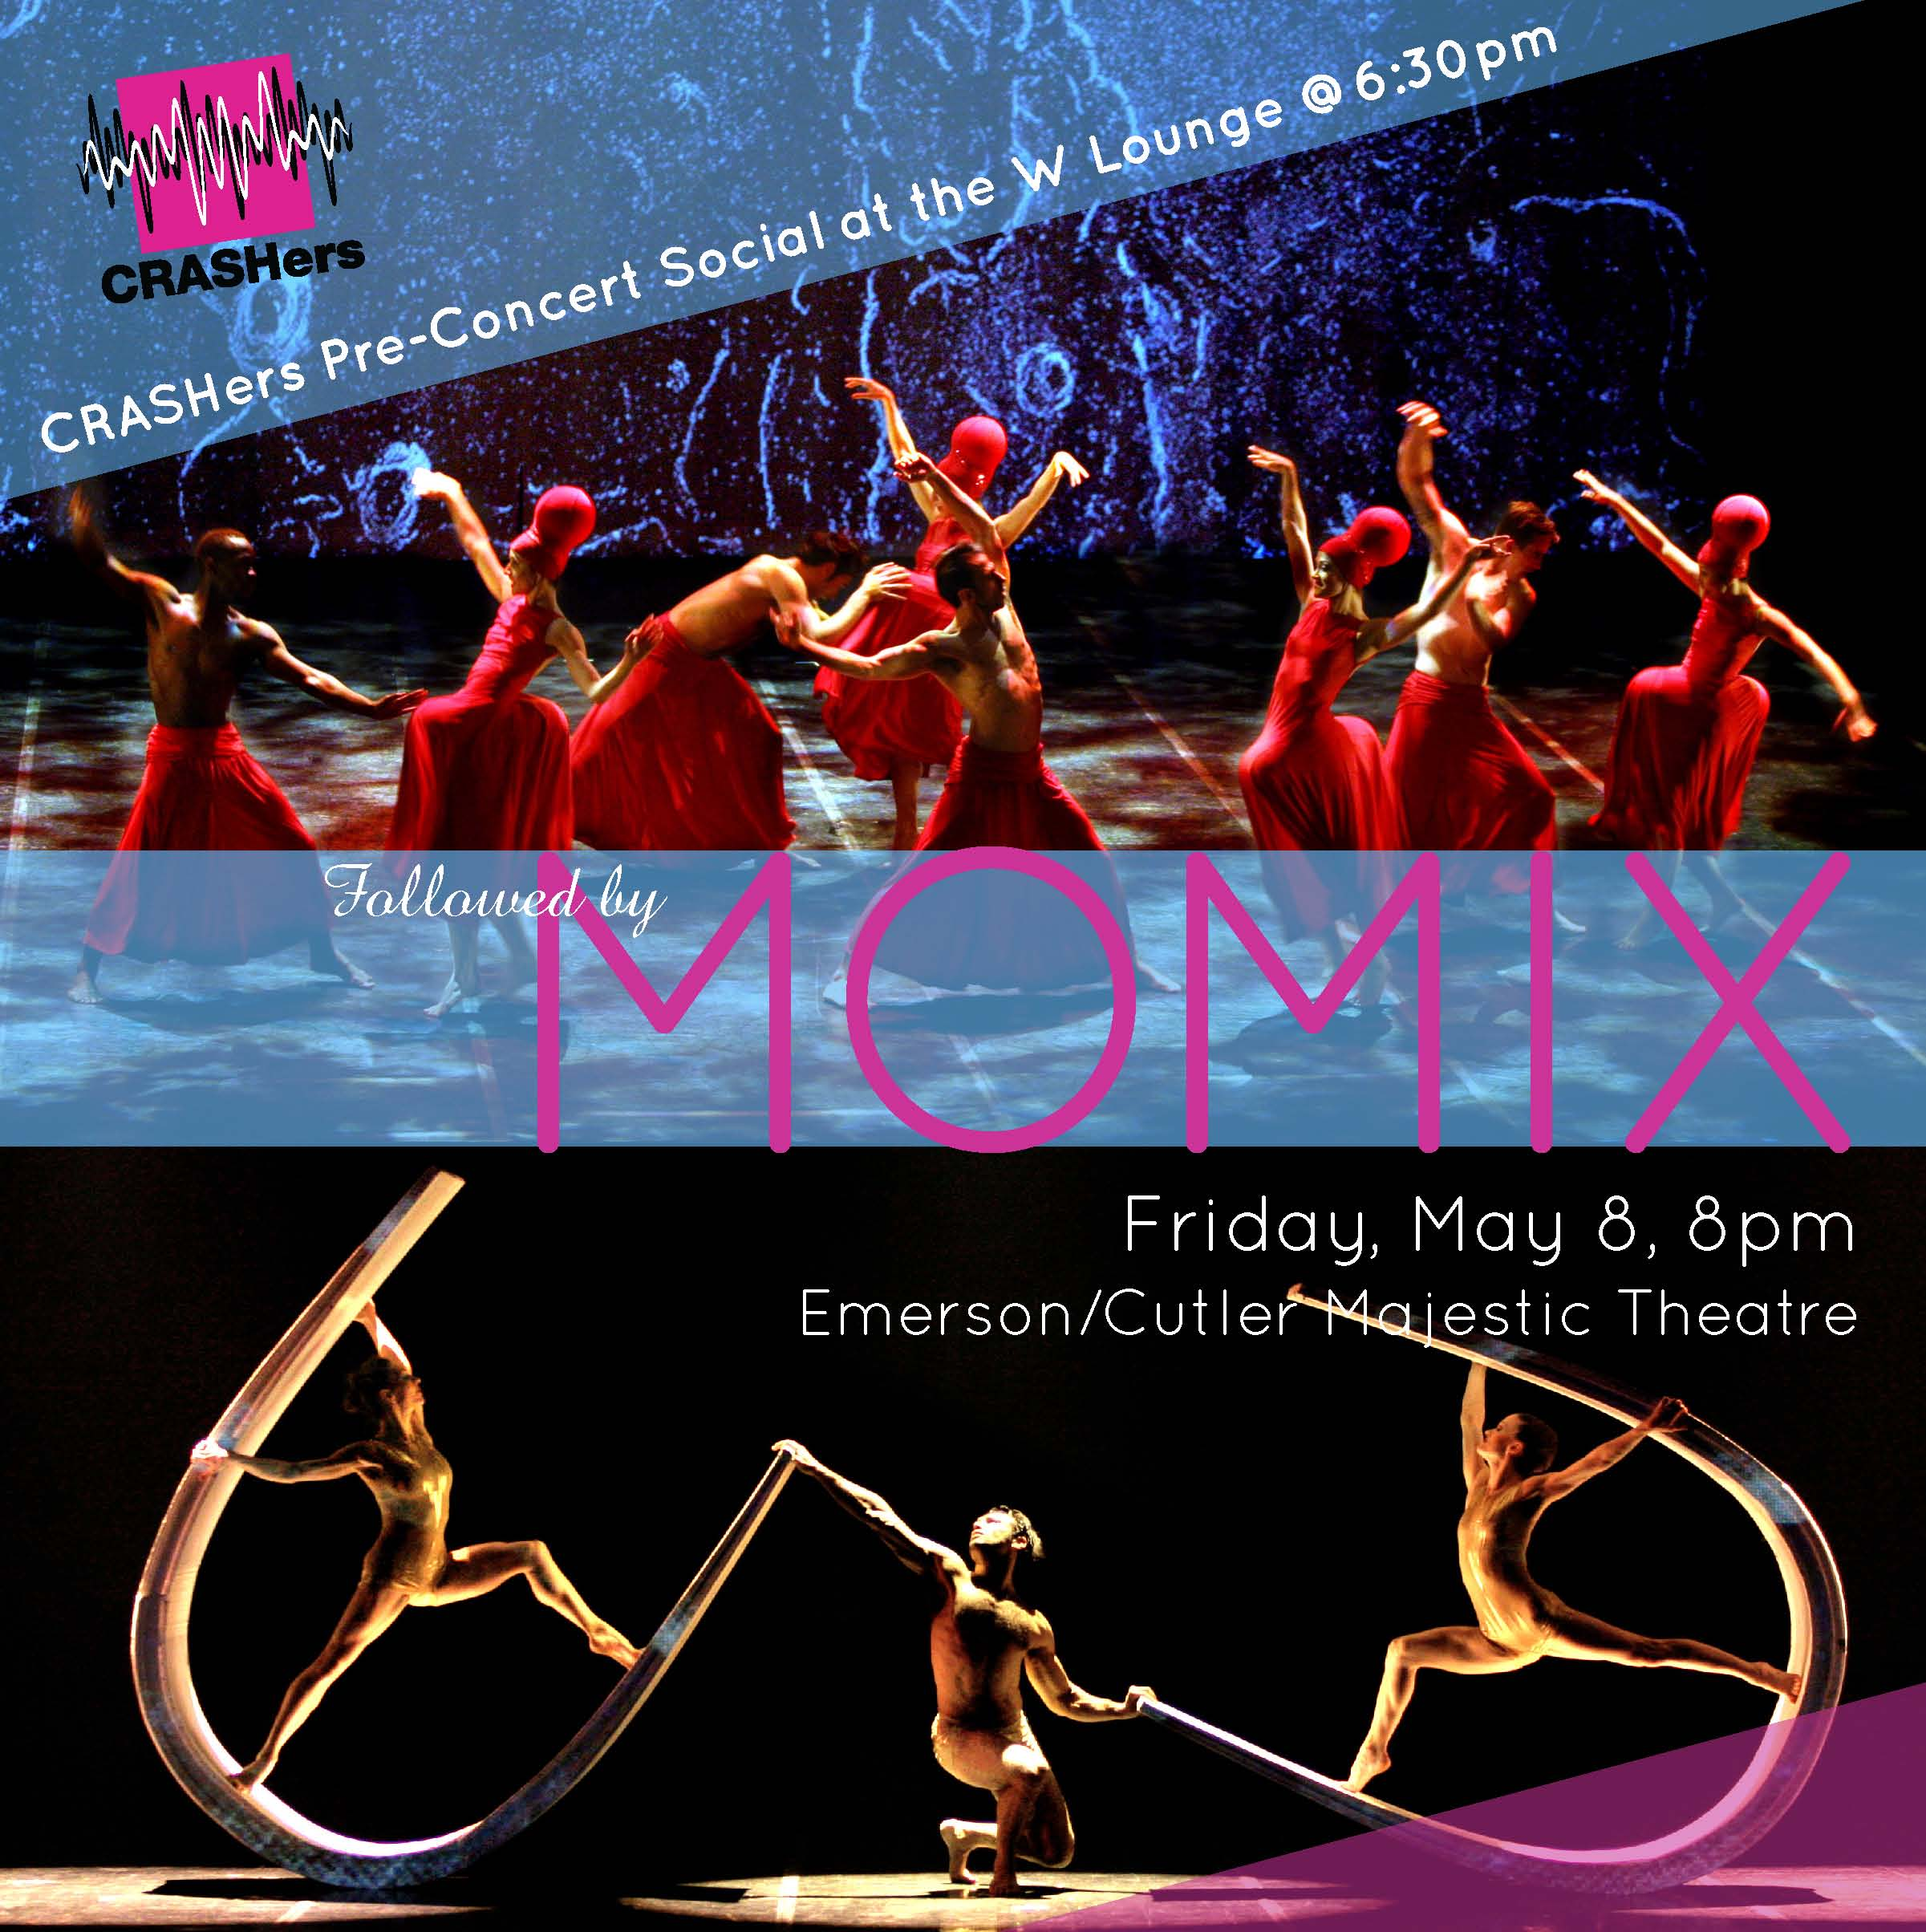 CRASHers Pre-Concert Social at W Lounge @ 6:30pm Followed by MOMIX